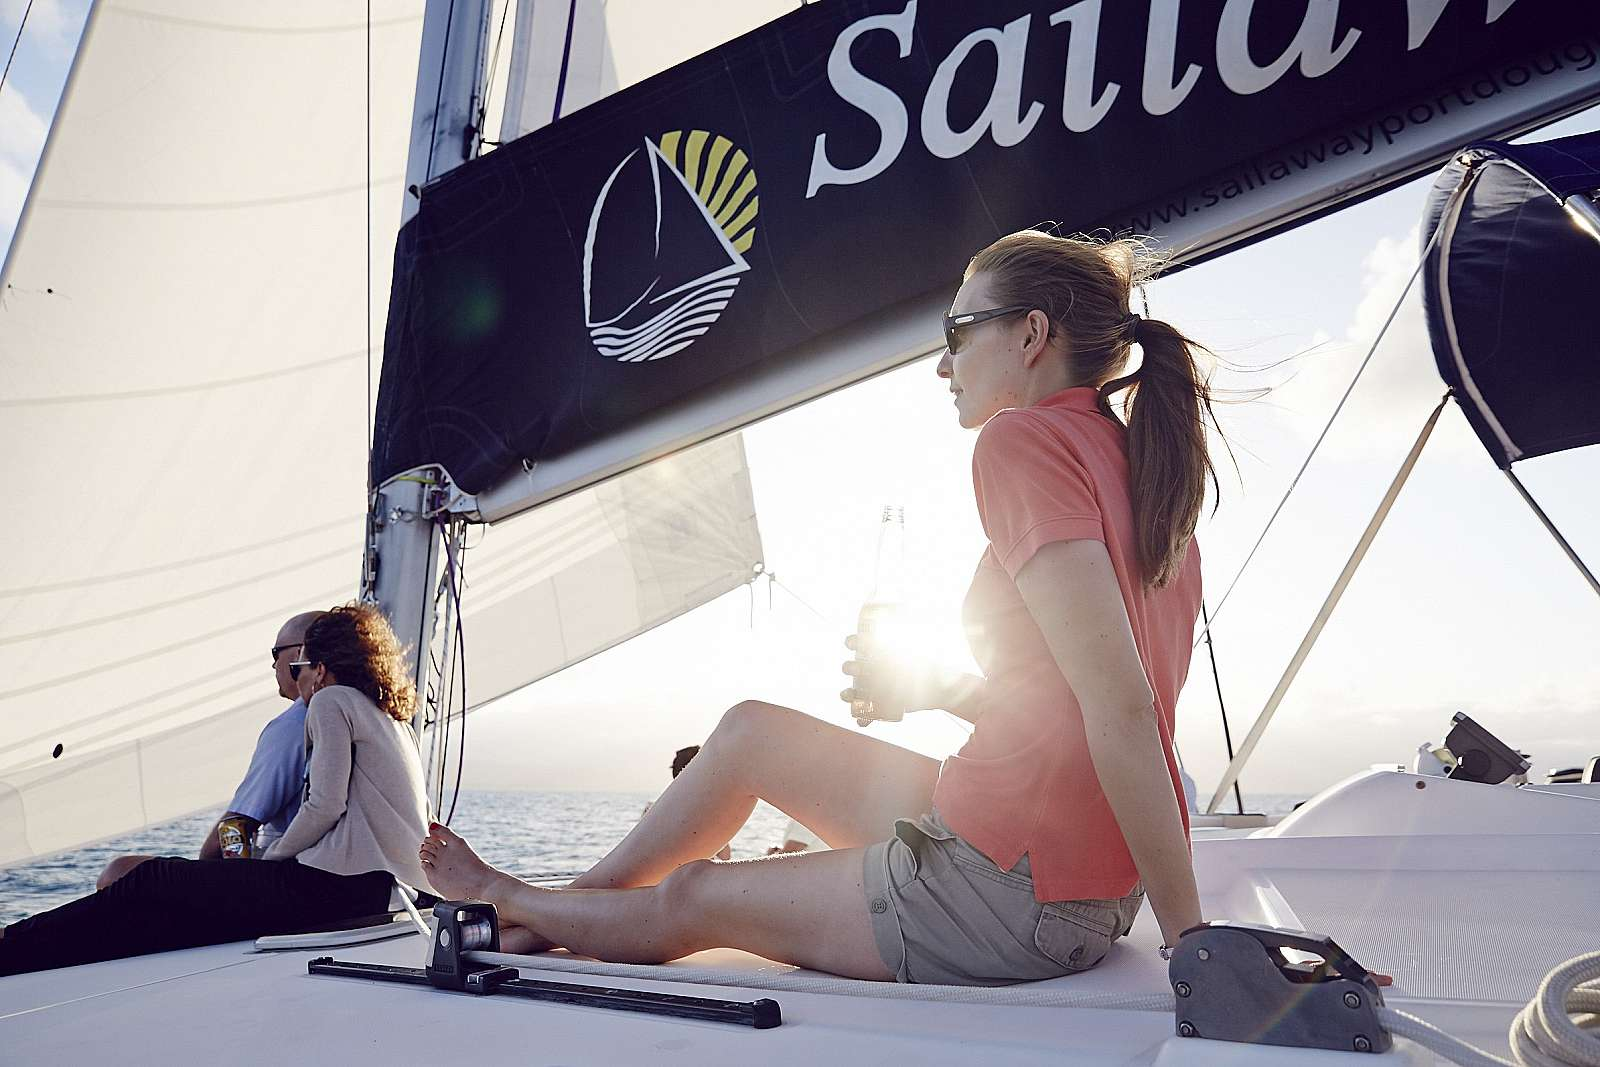 Image for Sailaway - Sailaway V ~ Low Isles Afternoon / Sunset Sail